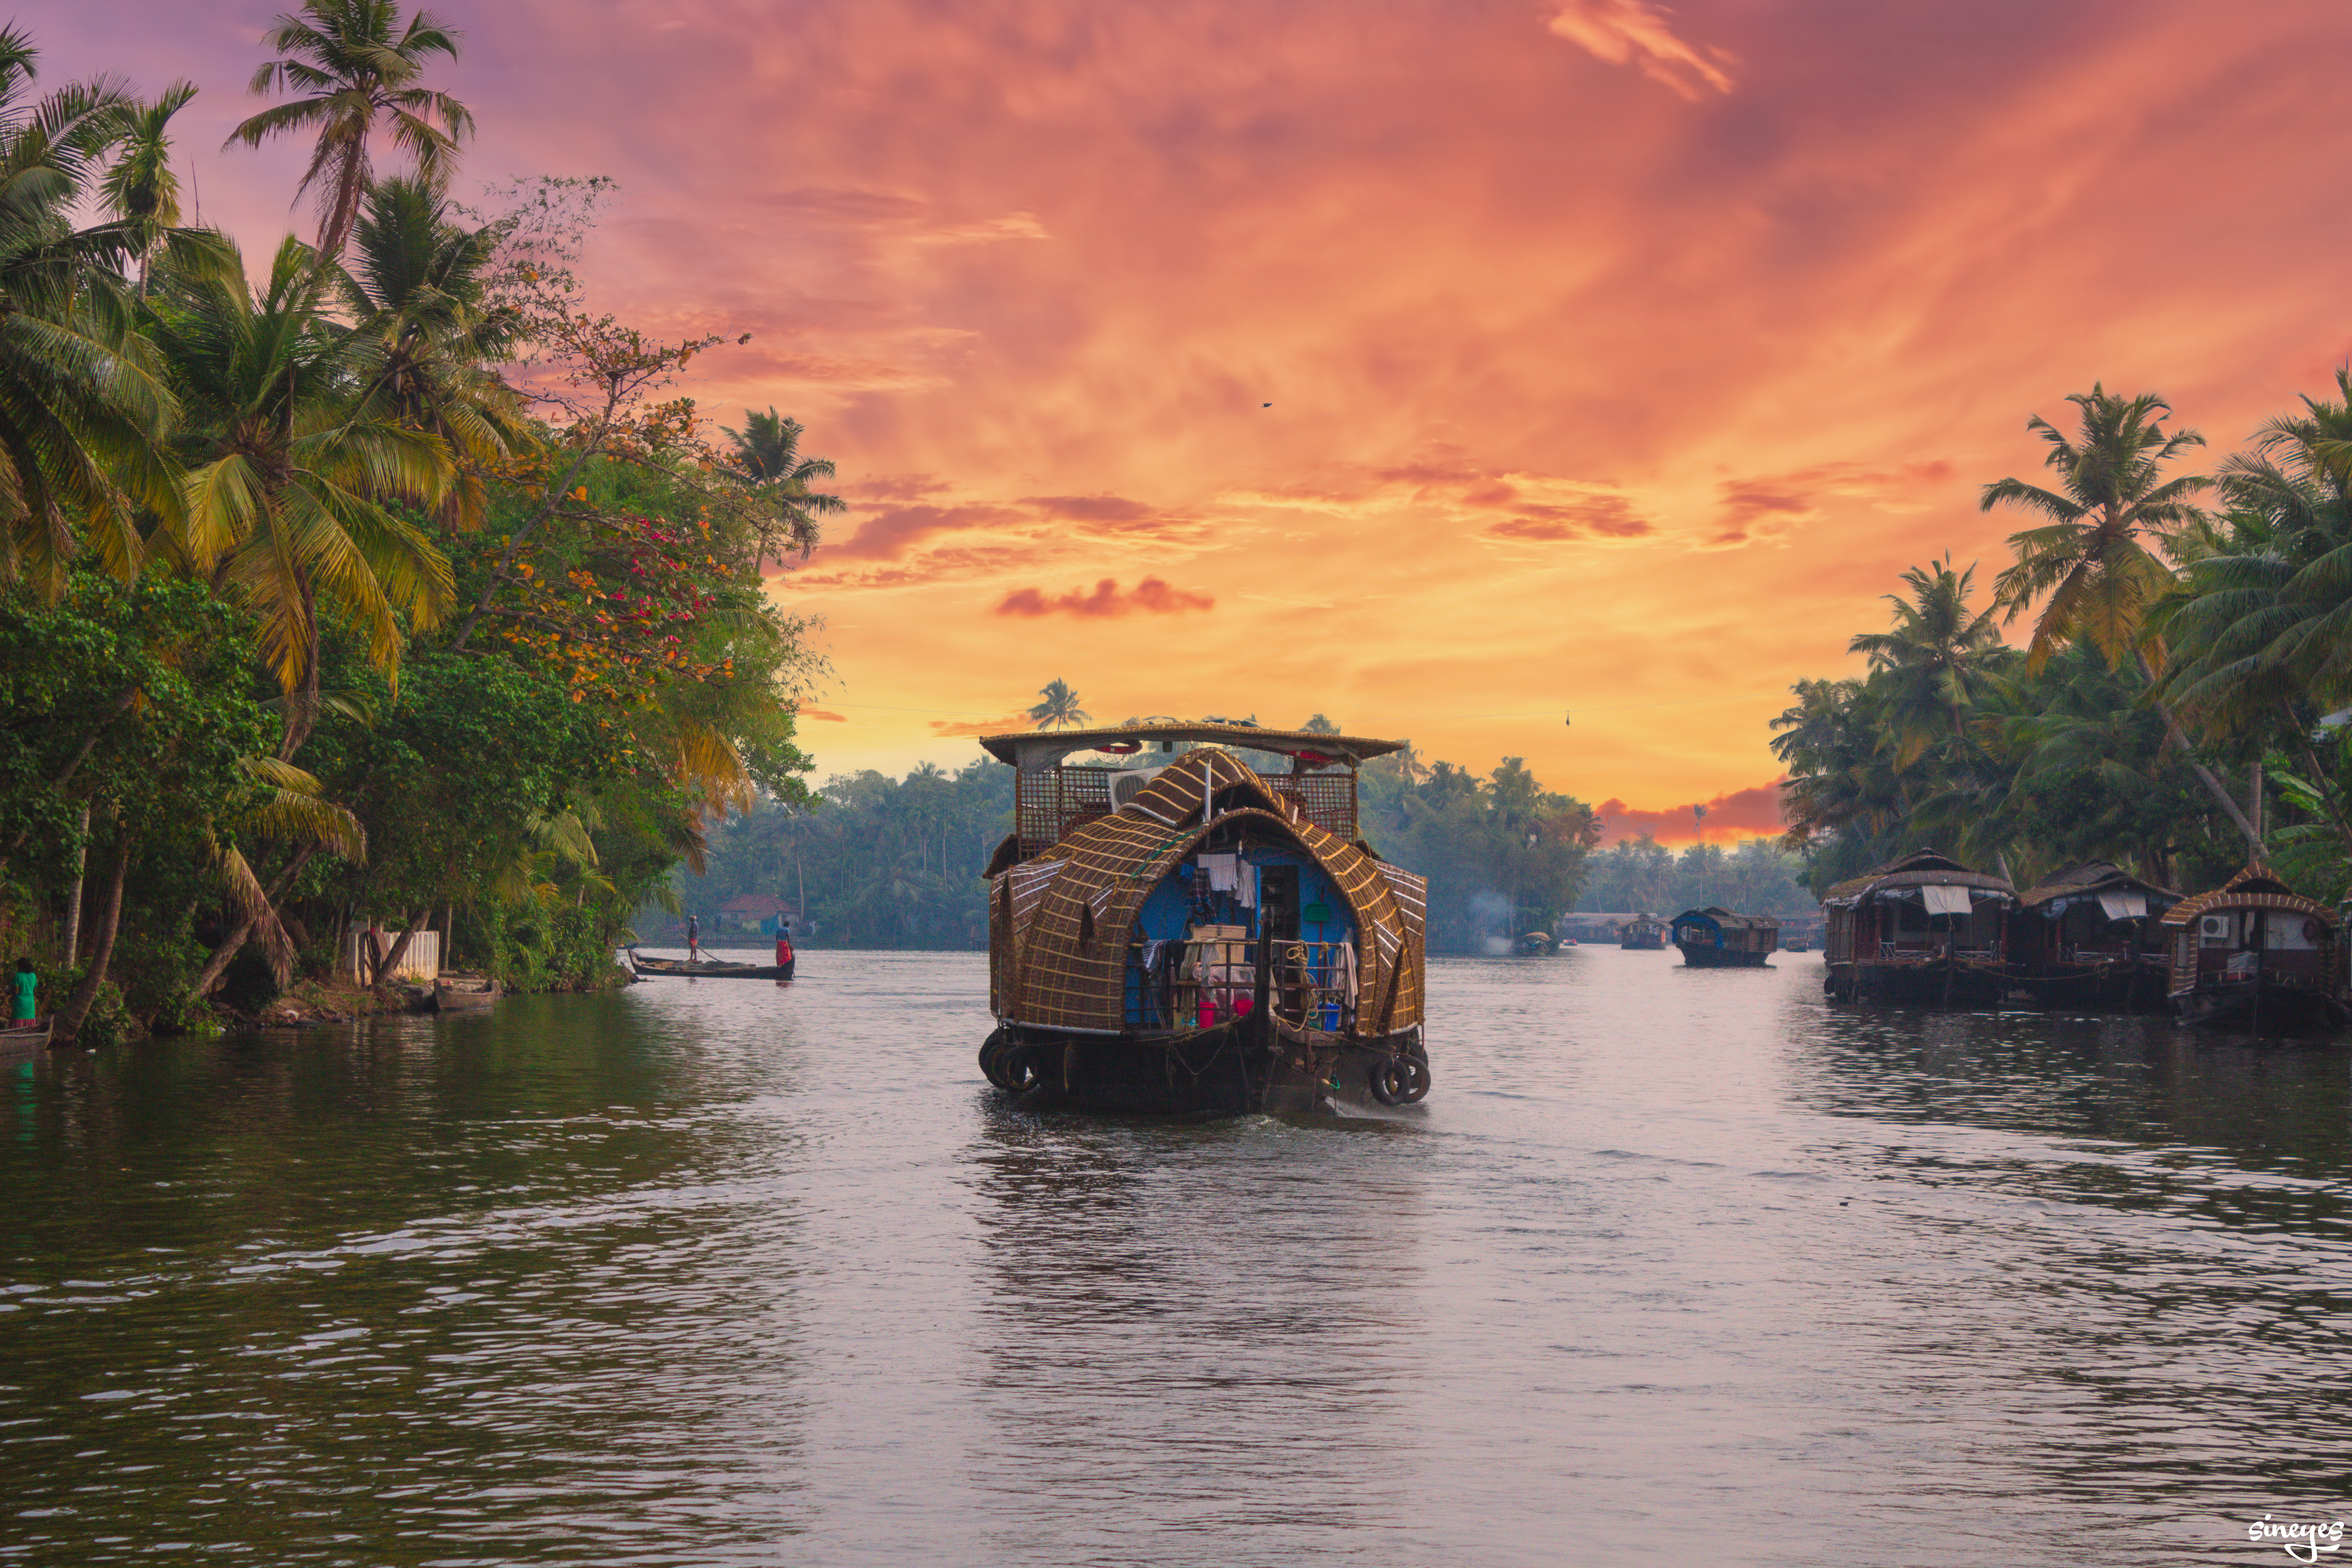 Kerala Sunset - Alleppey, Inde by sineyes